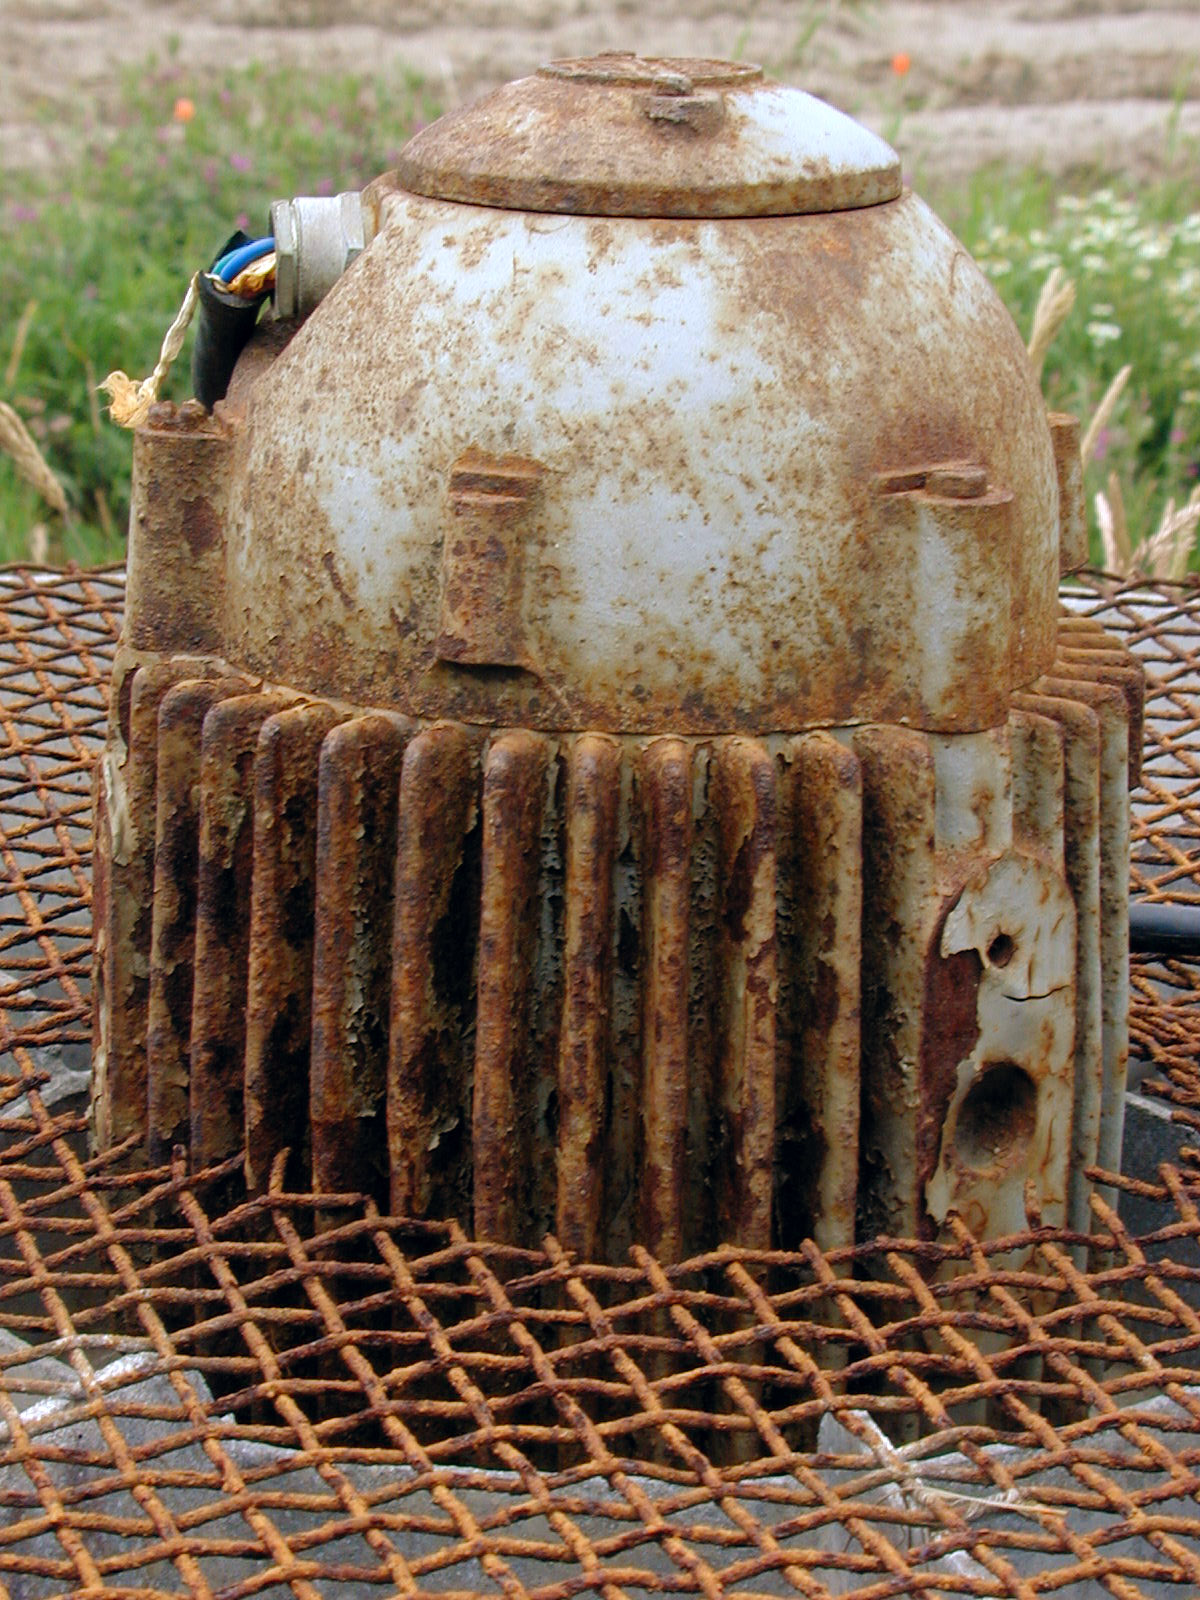 engine metal rust rusted object